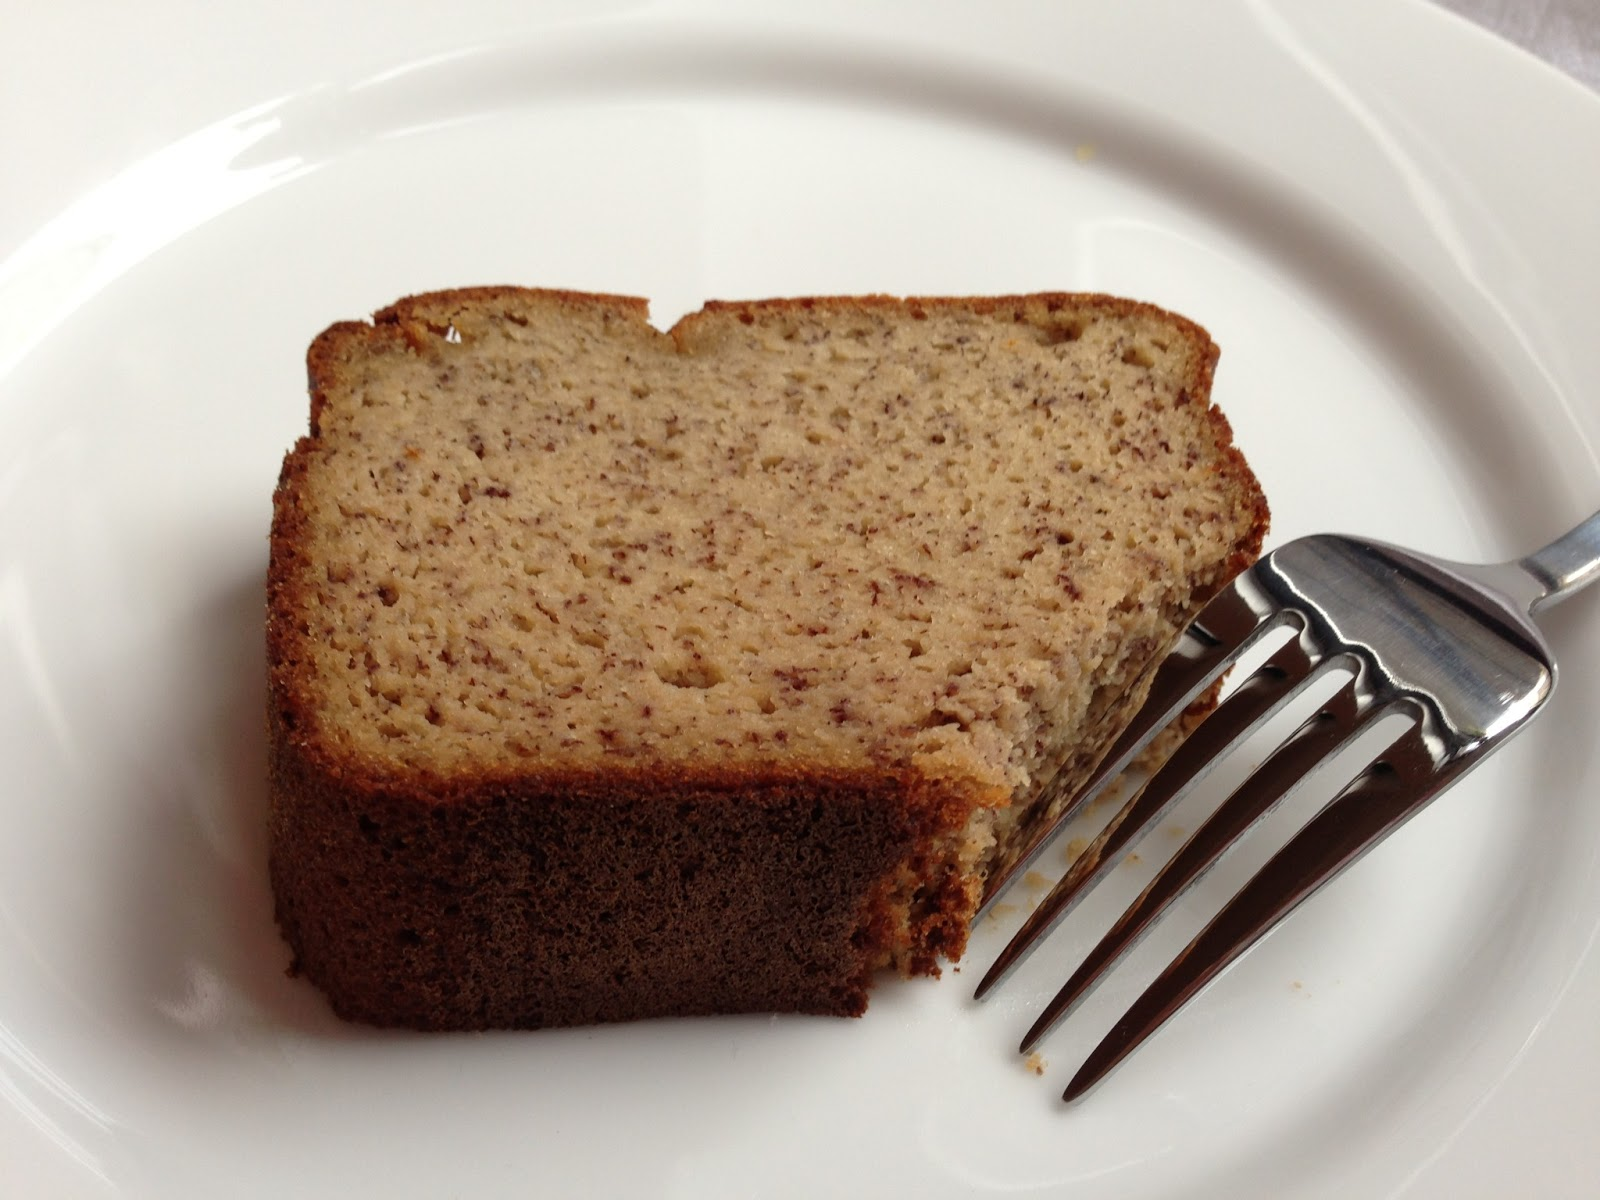 Grain free banana bread kosher for passover forumfinder Gallery